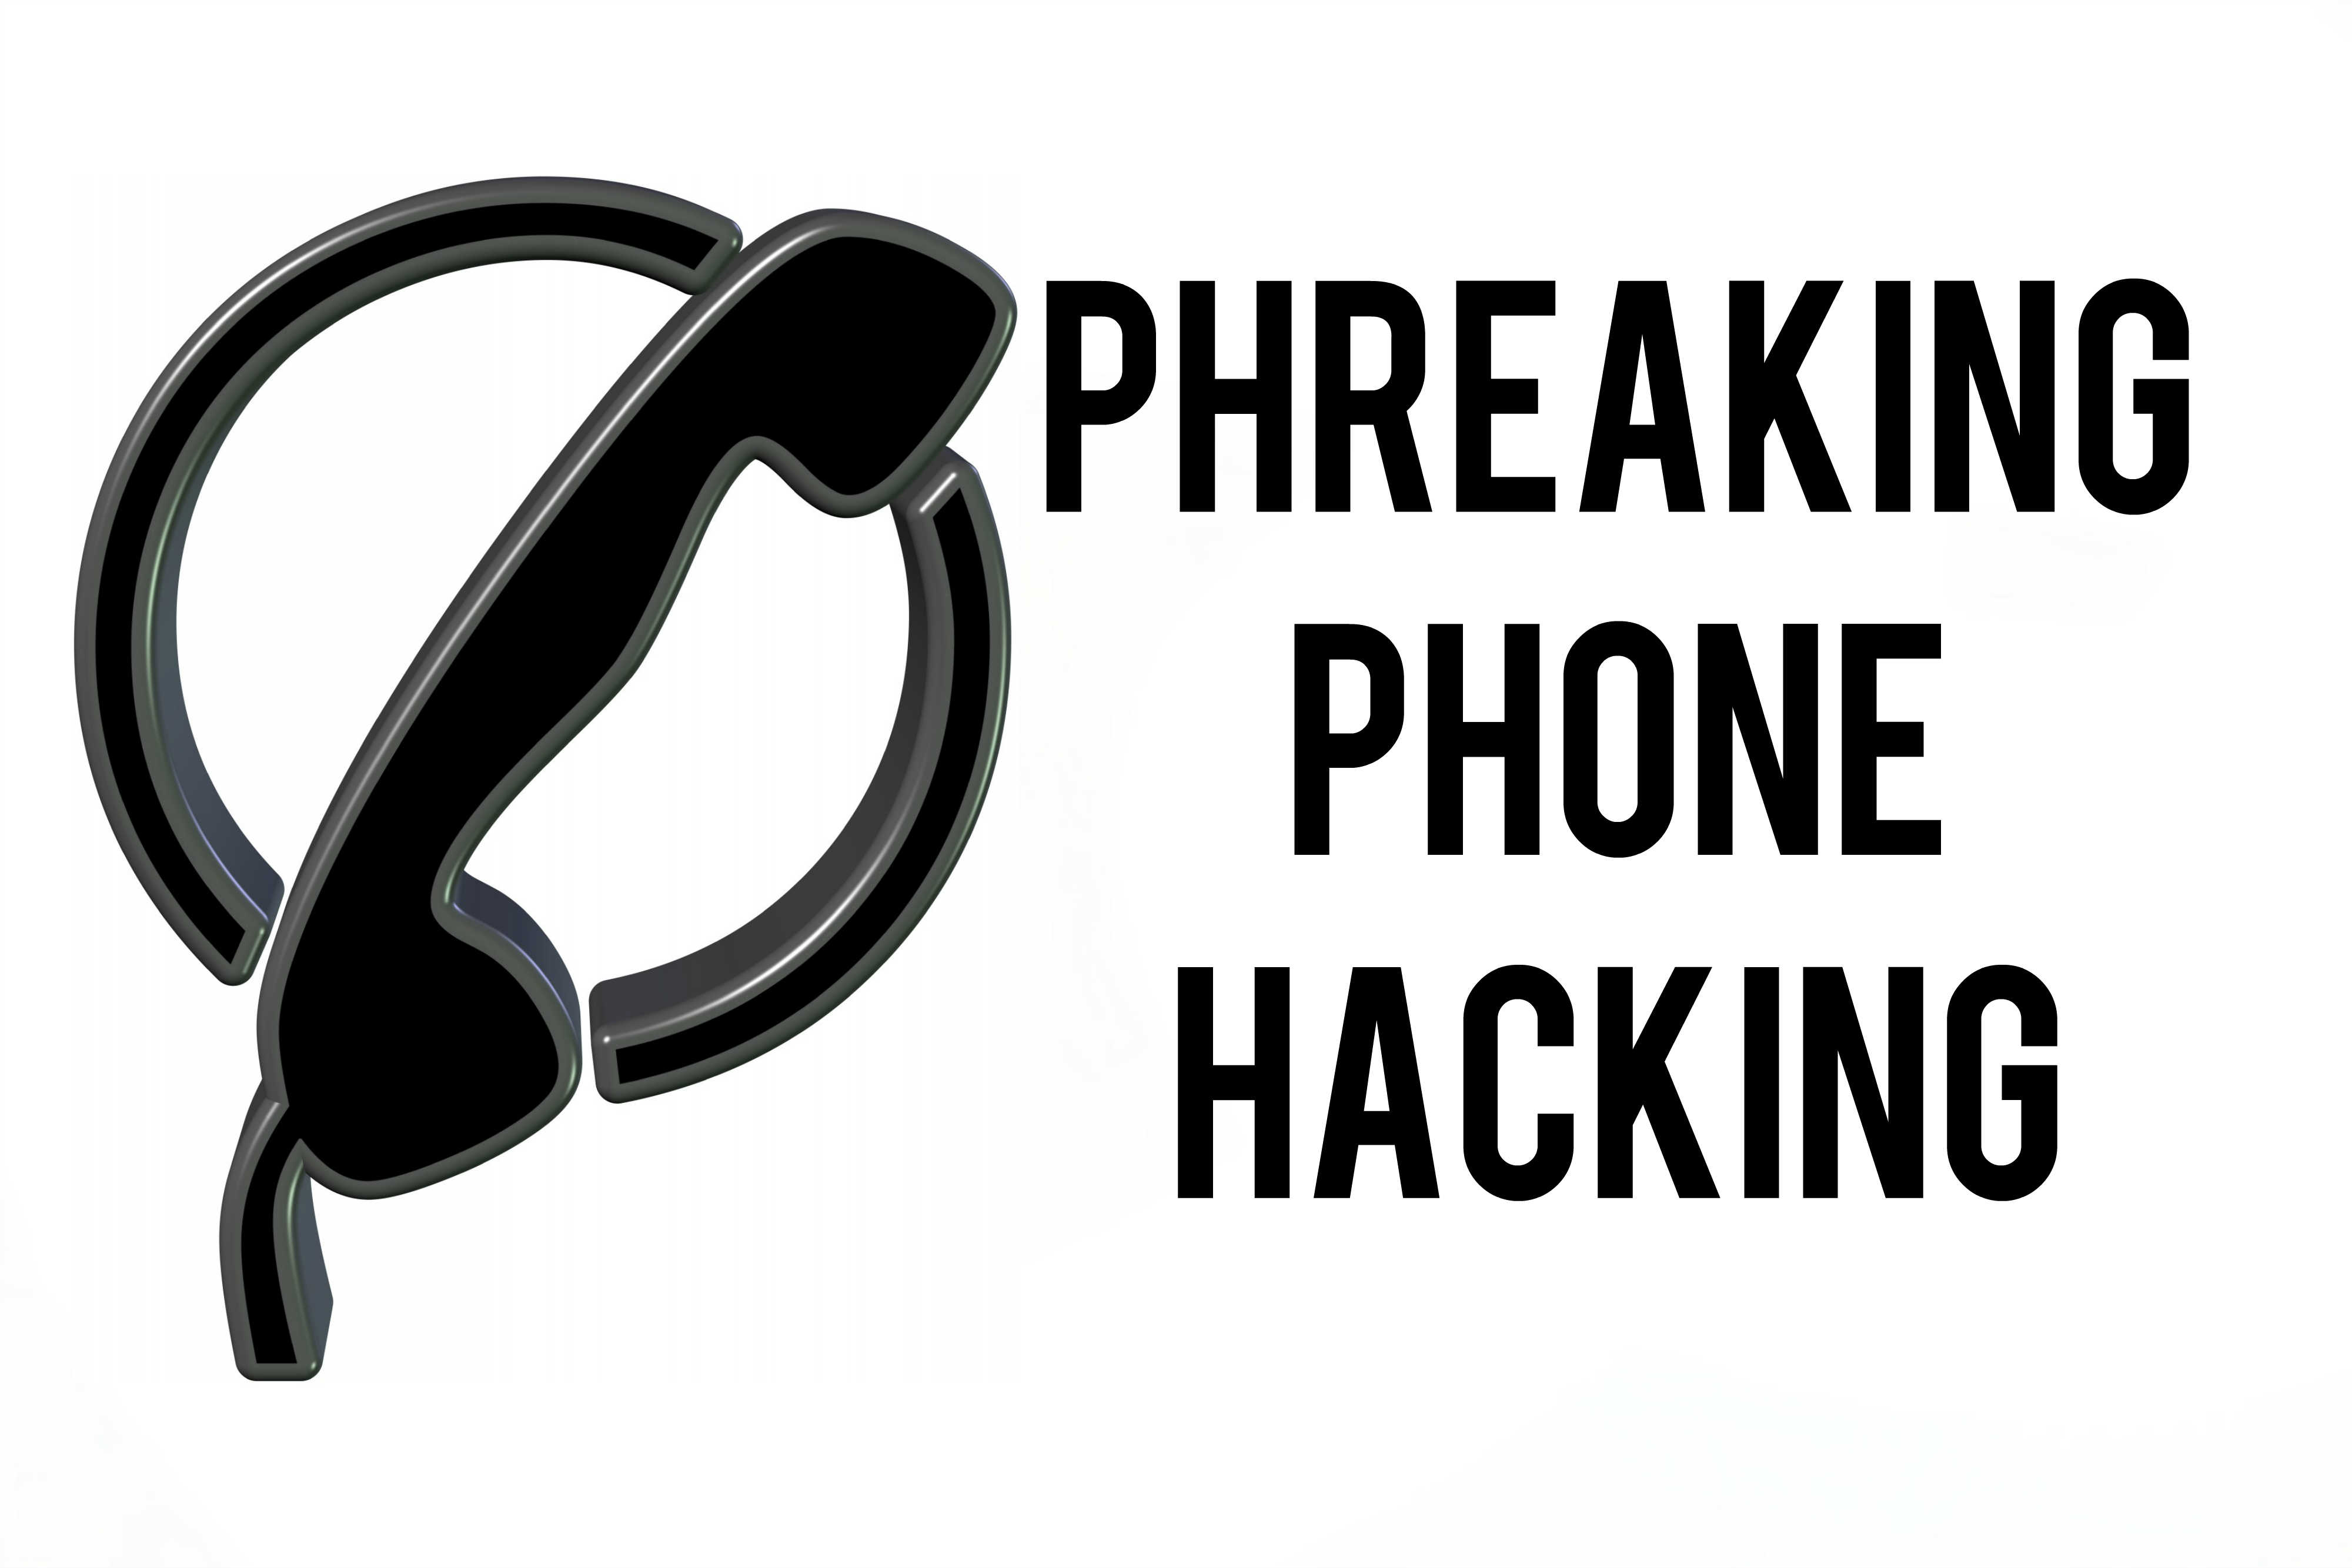 Phreaking Phone